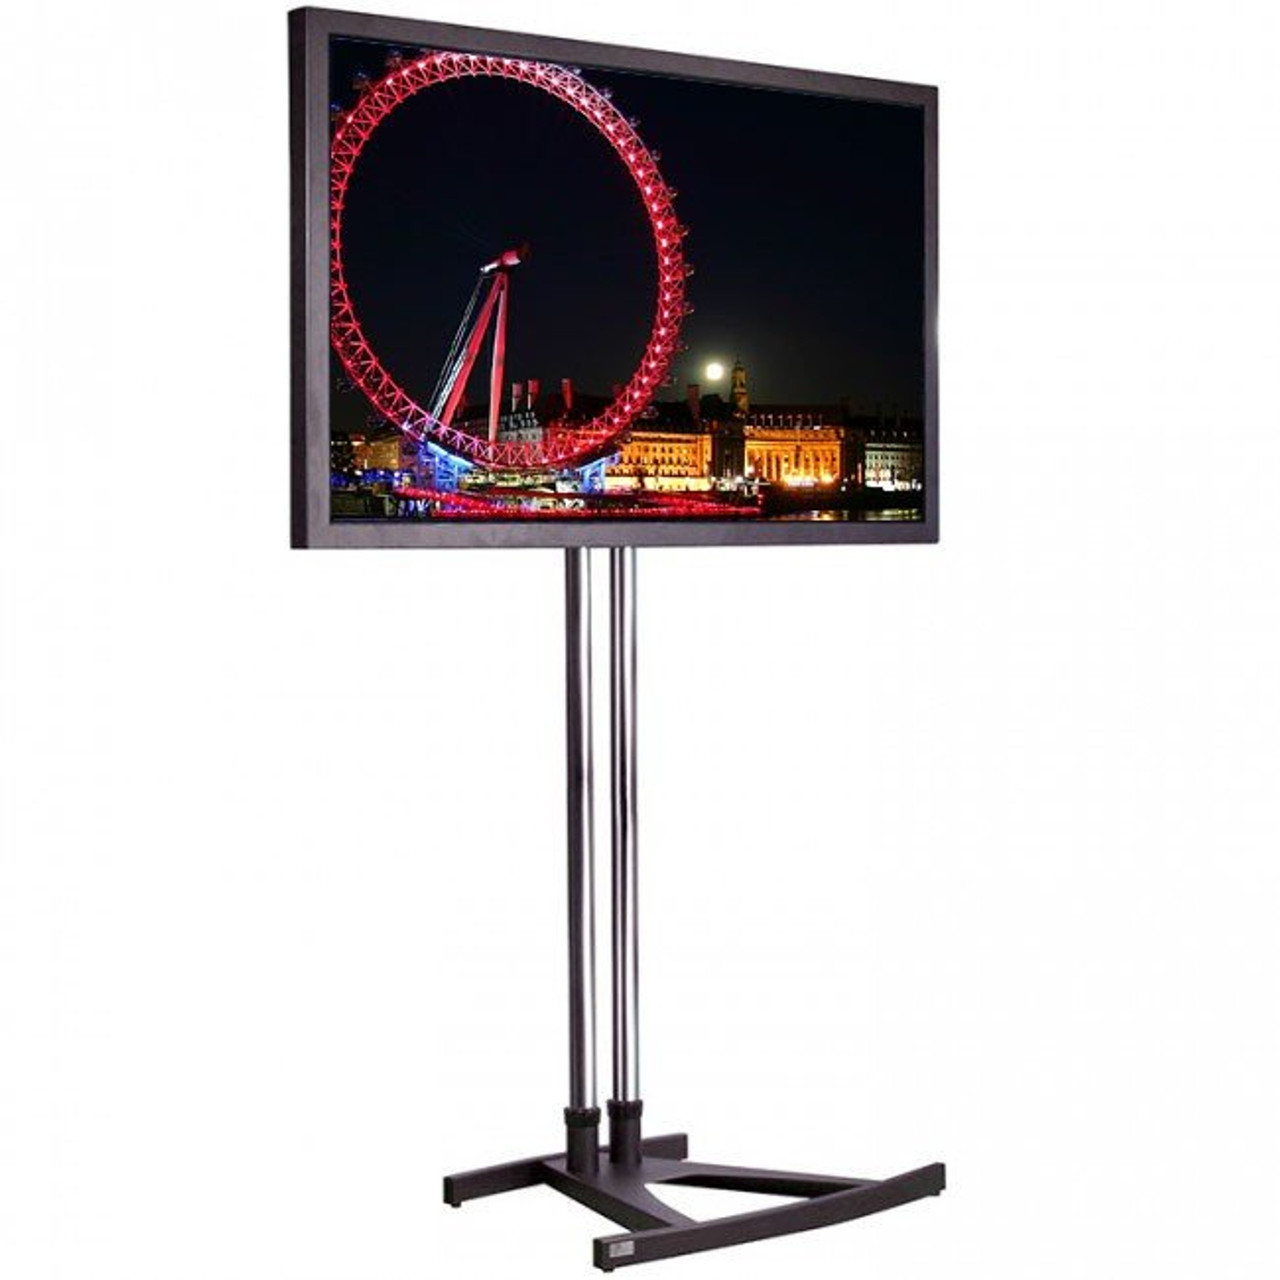 Display Stand For Hire : Exhibition display stand hire ireland applied signs display